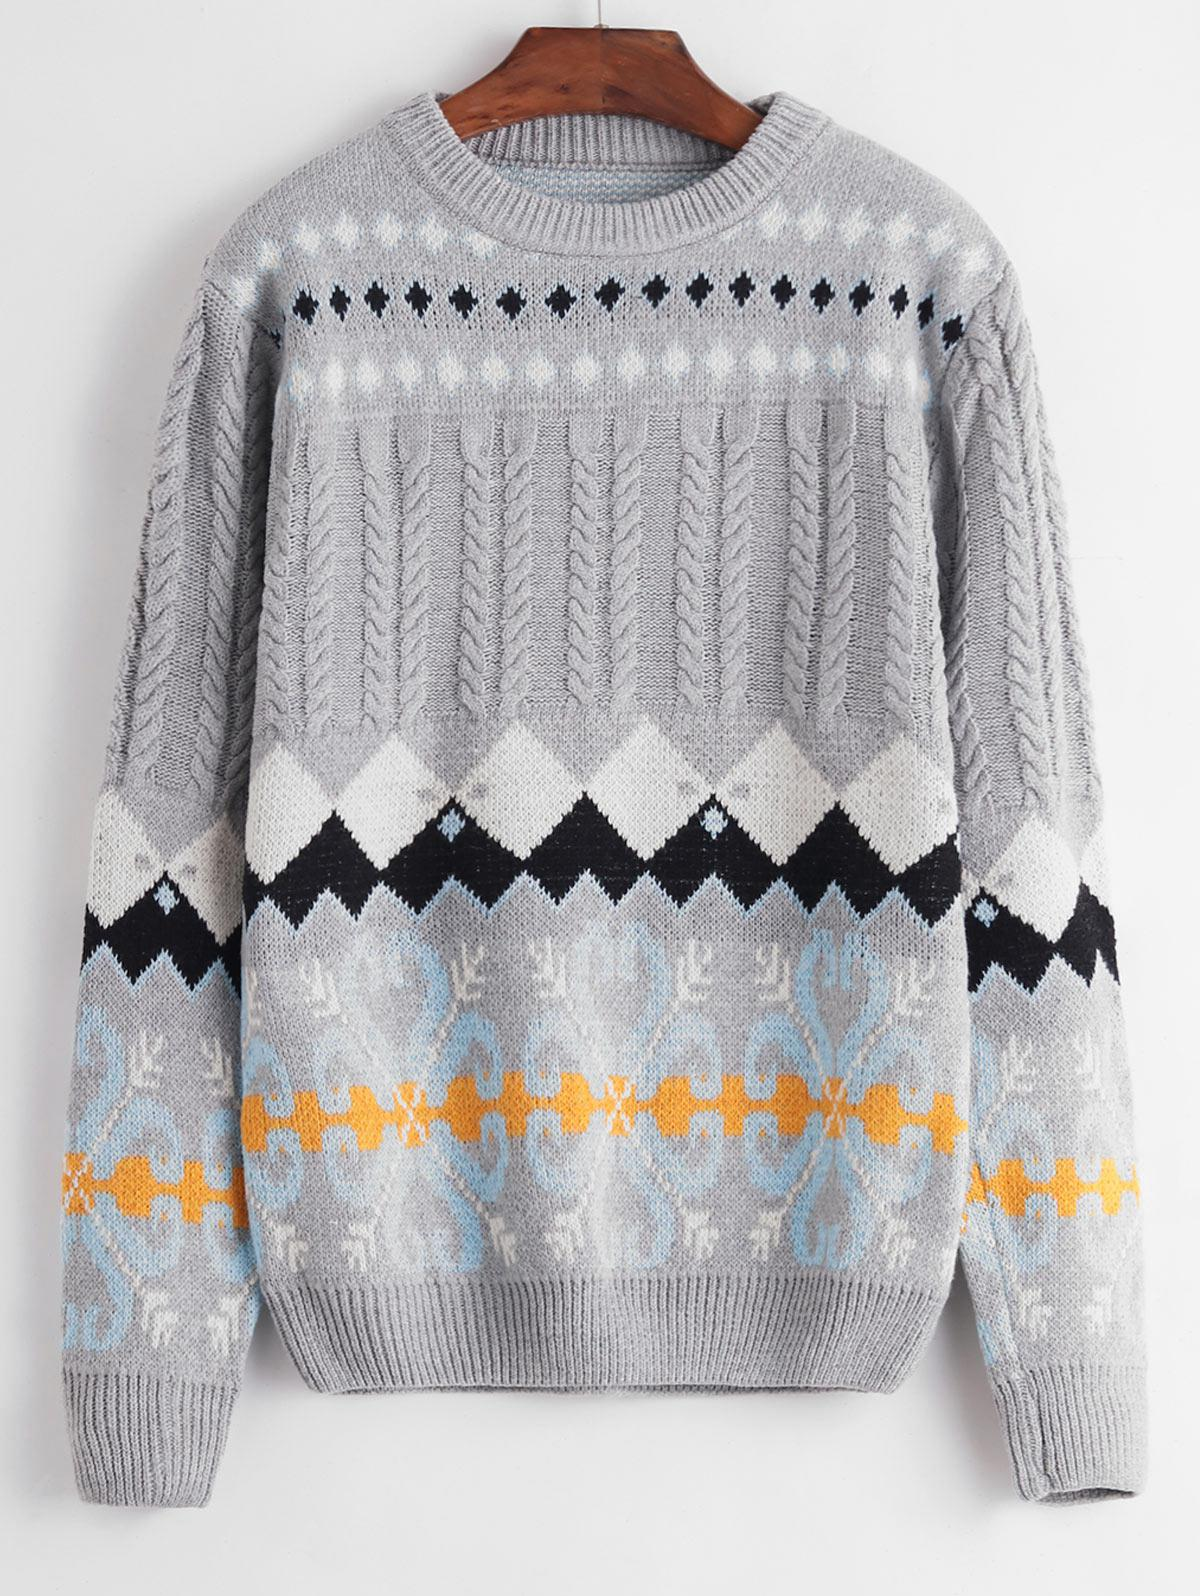 Crew Neck Intarsia Knit Graphic Cable Knit Sweater